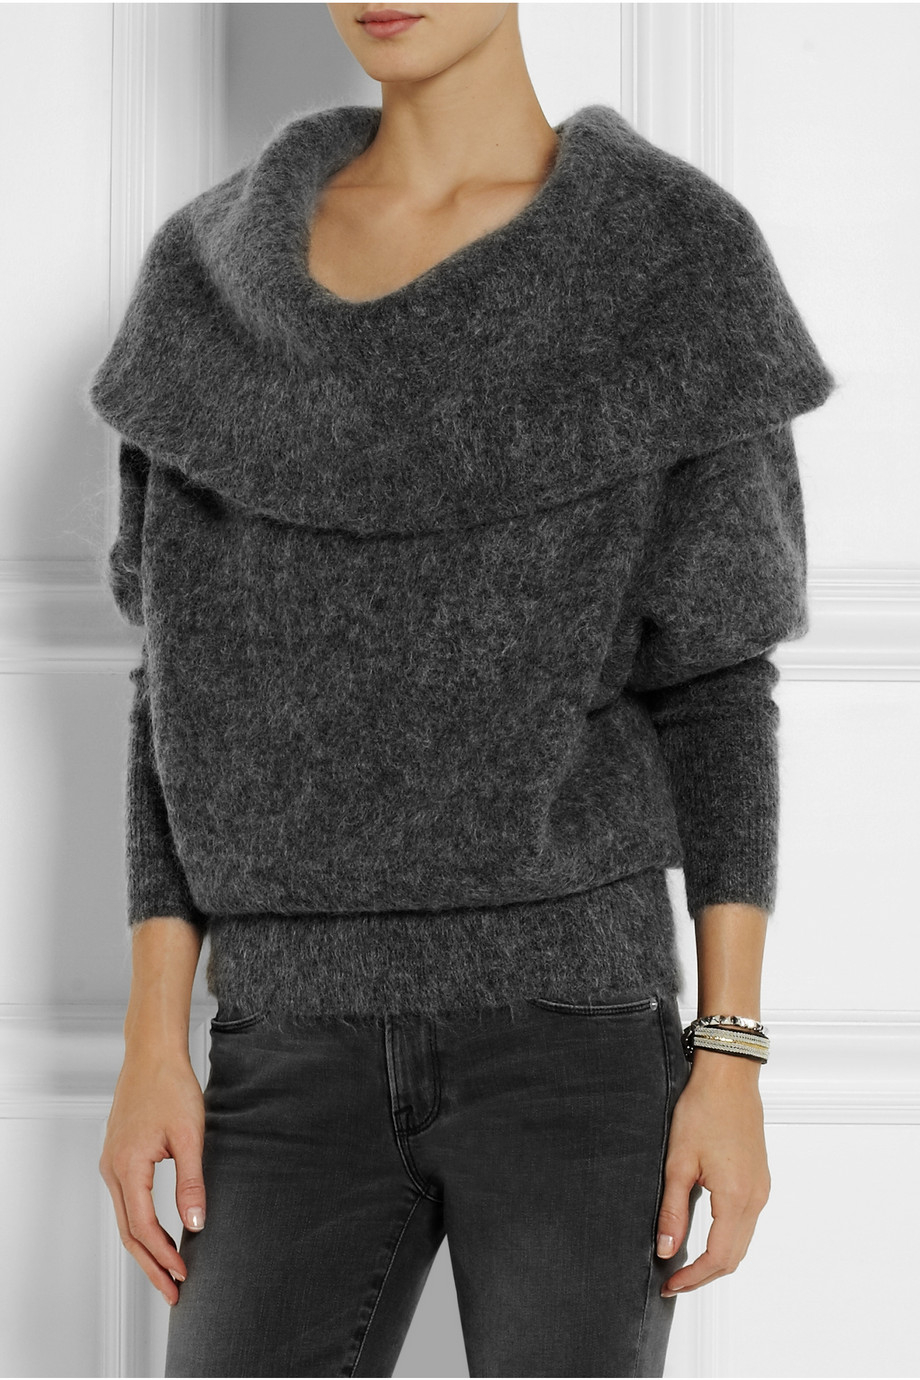 lyst acne studios daze oversized knitted sweater in gray. Black Bedroom Furniture Sets. Home Design Ideas